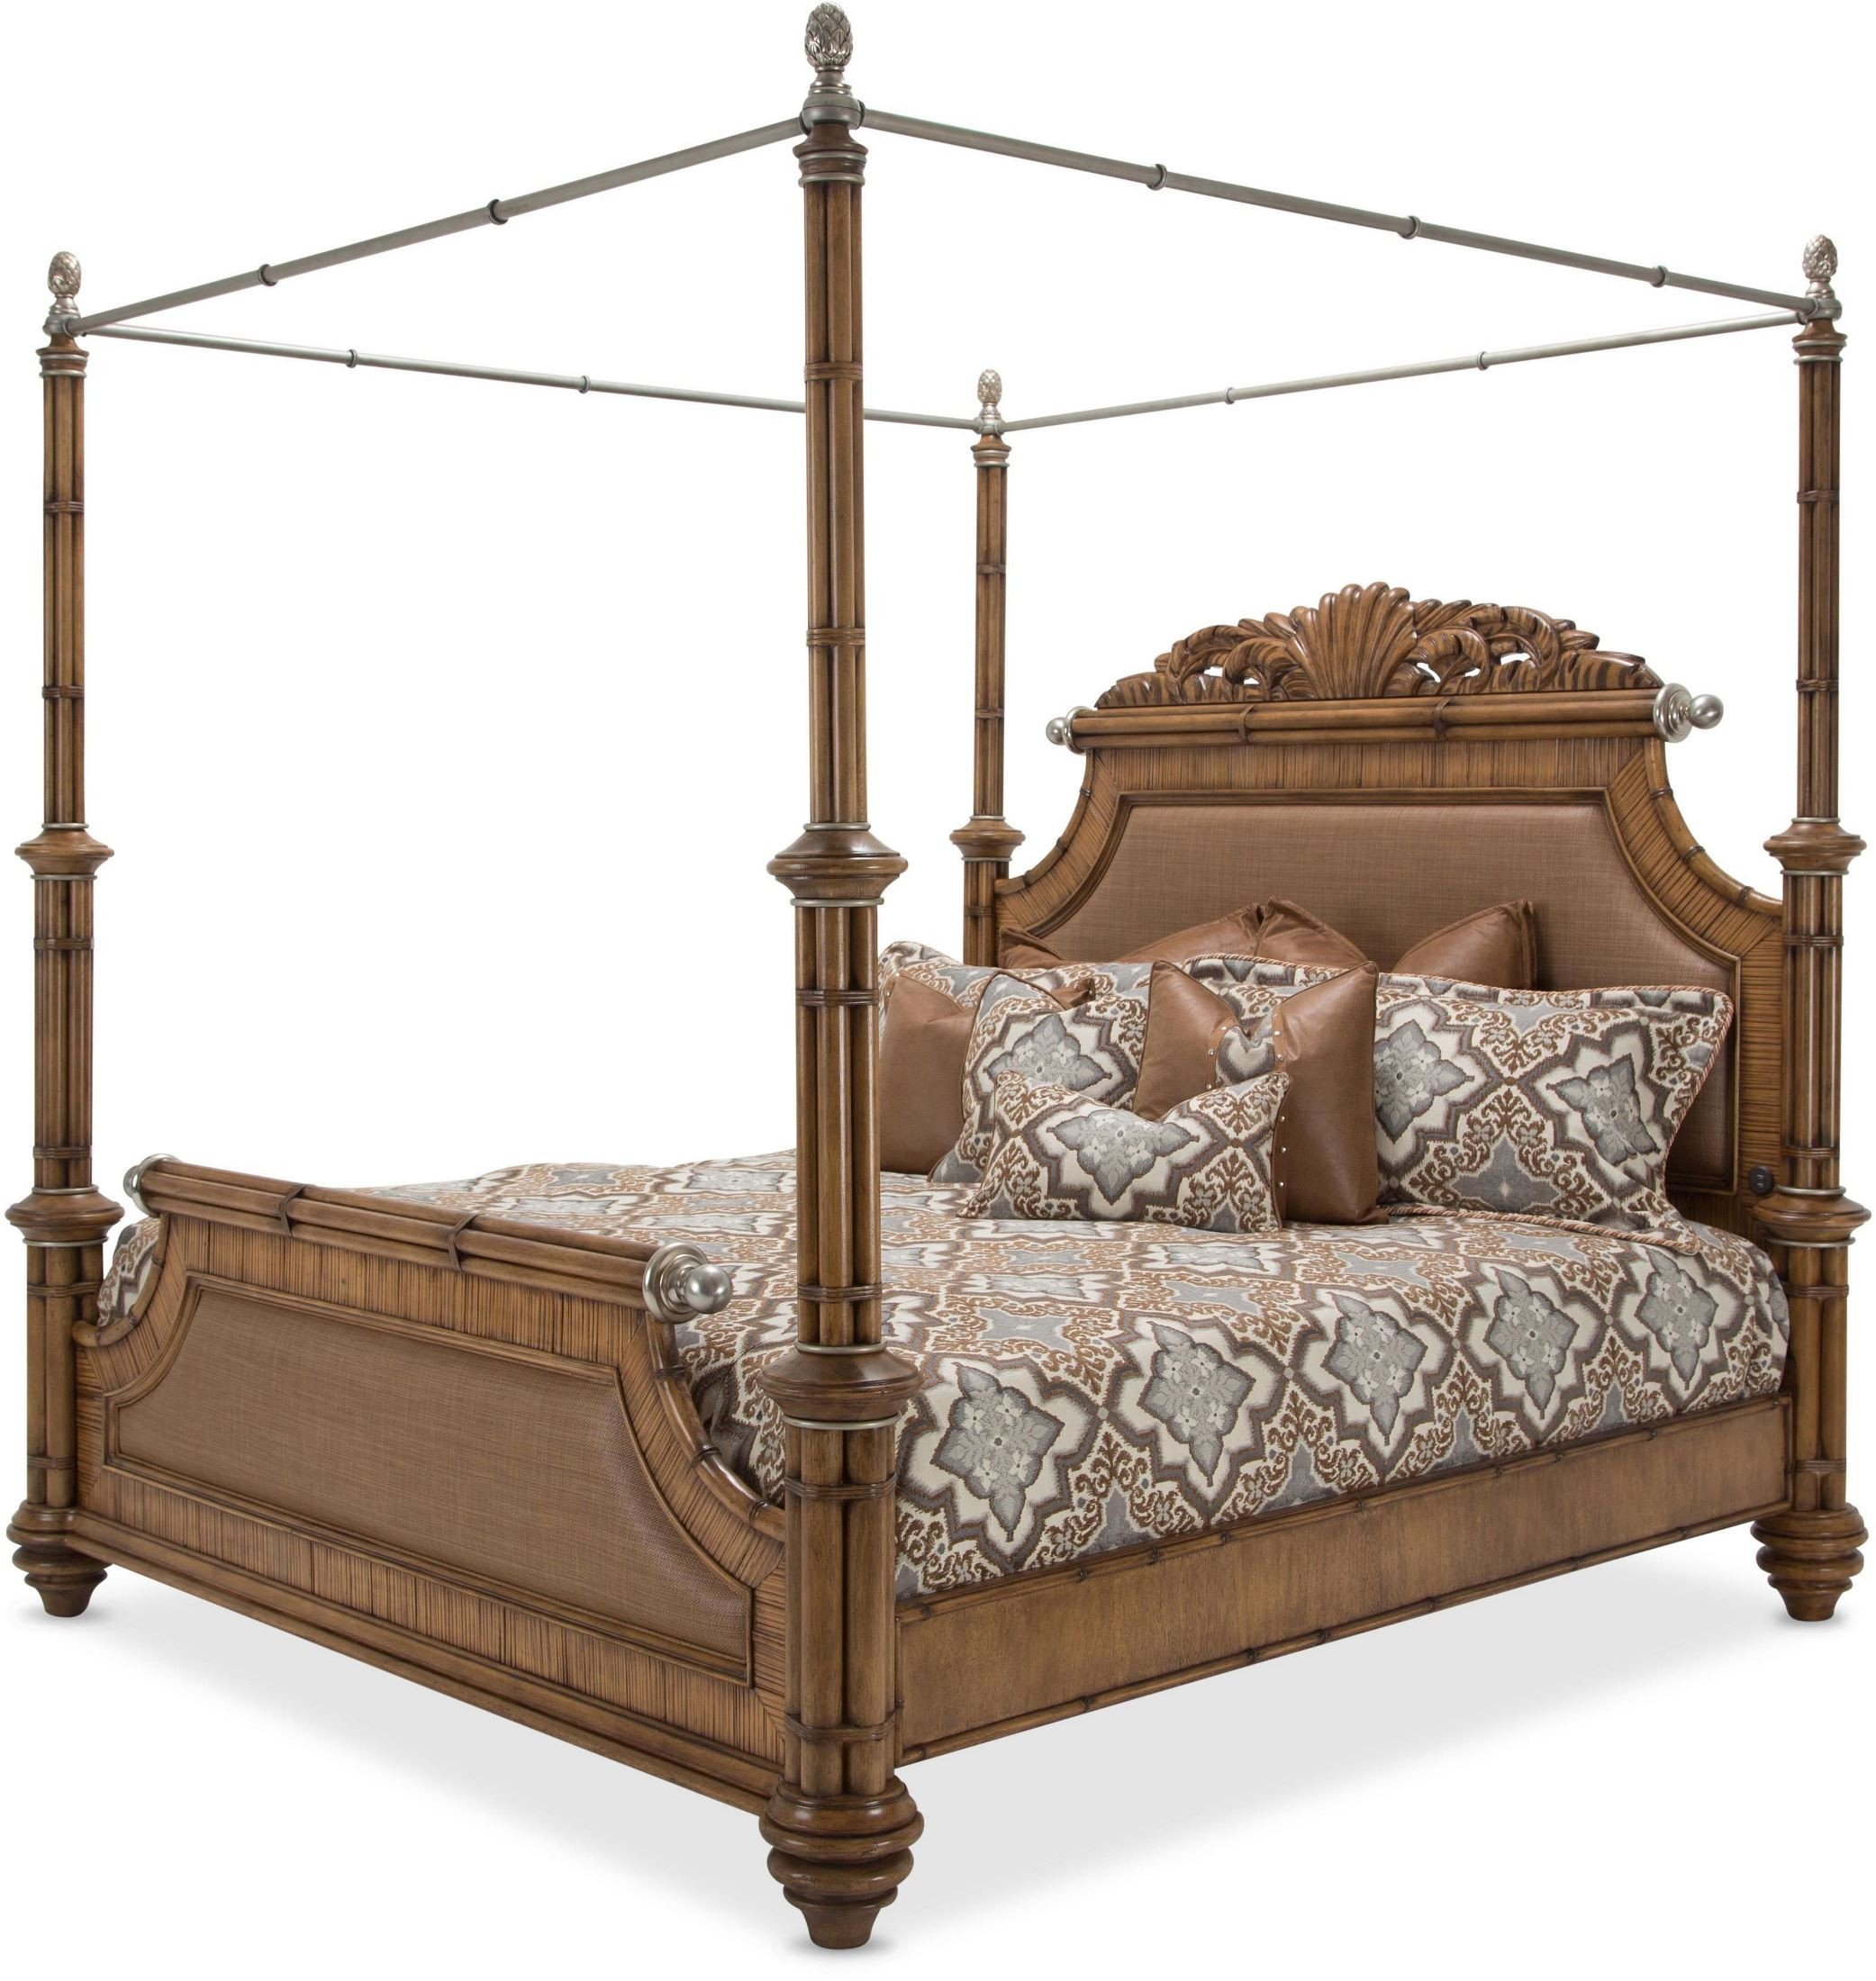 Excursions Caramel Cashmere Cal King Poster Bed From Aico